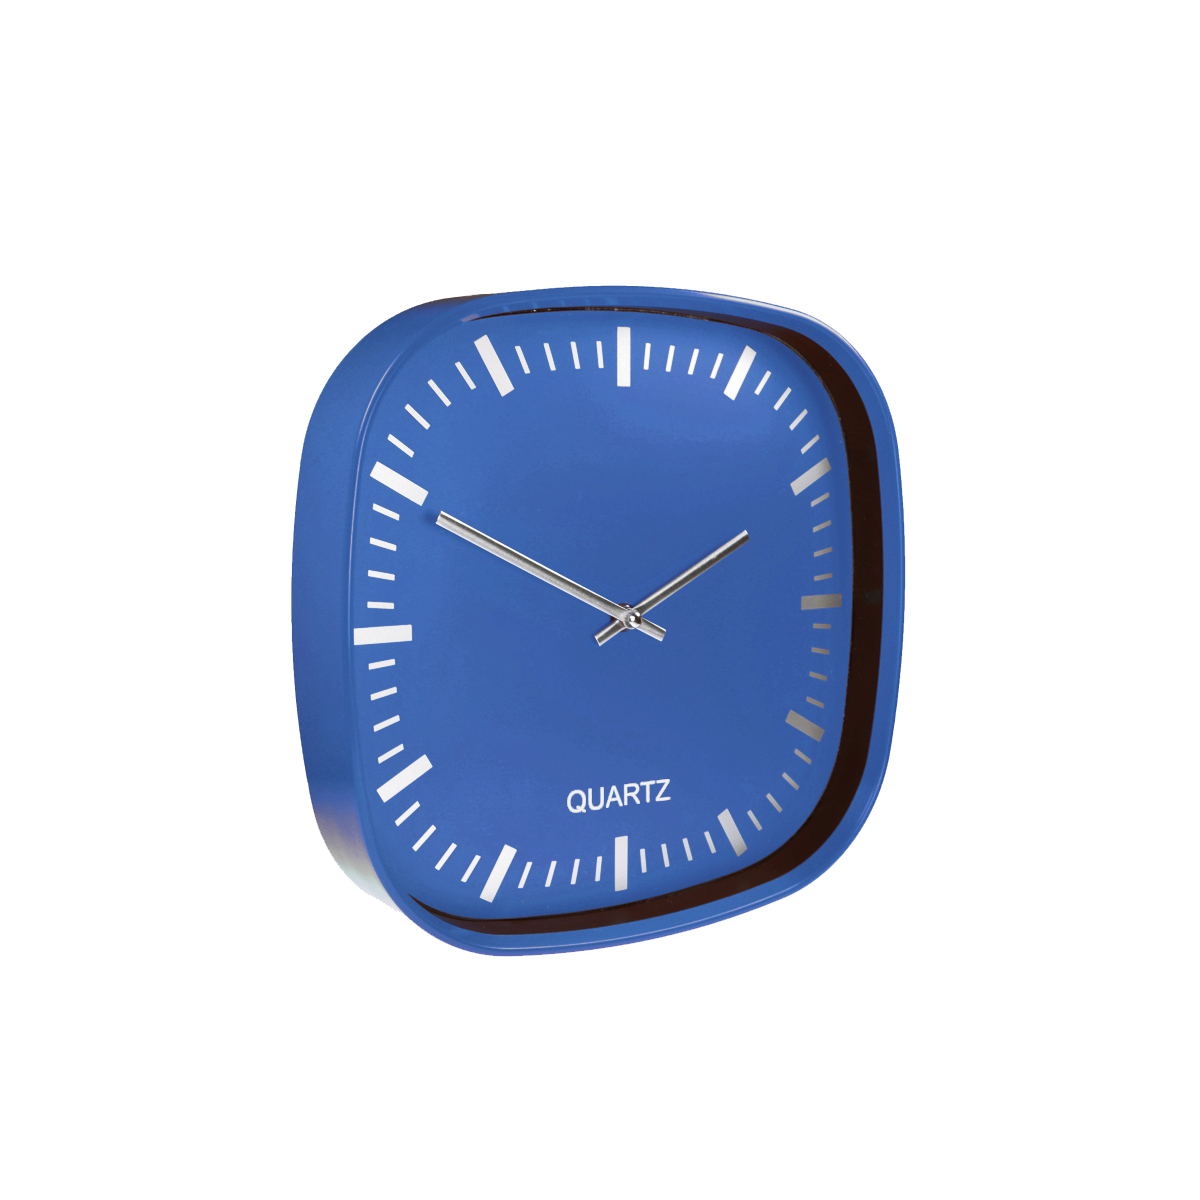 Plastic Wall Clock 30 - hmi36030-07 (Blue)